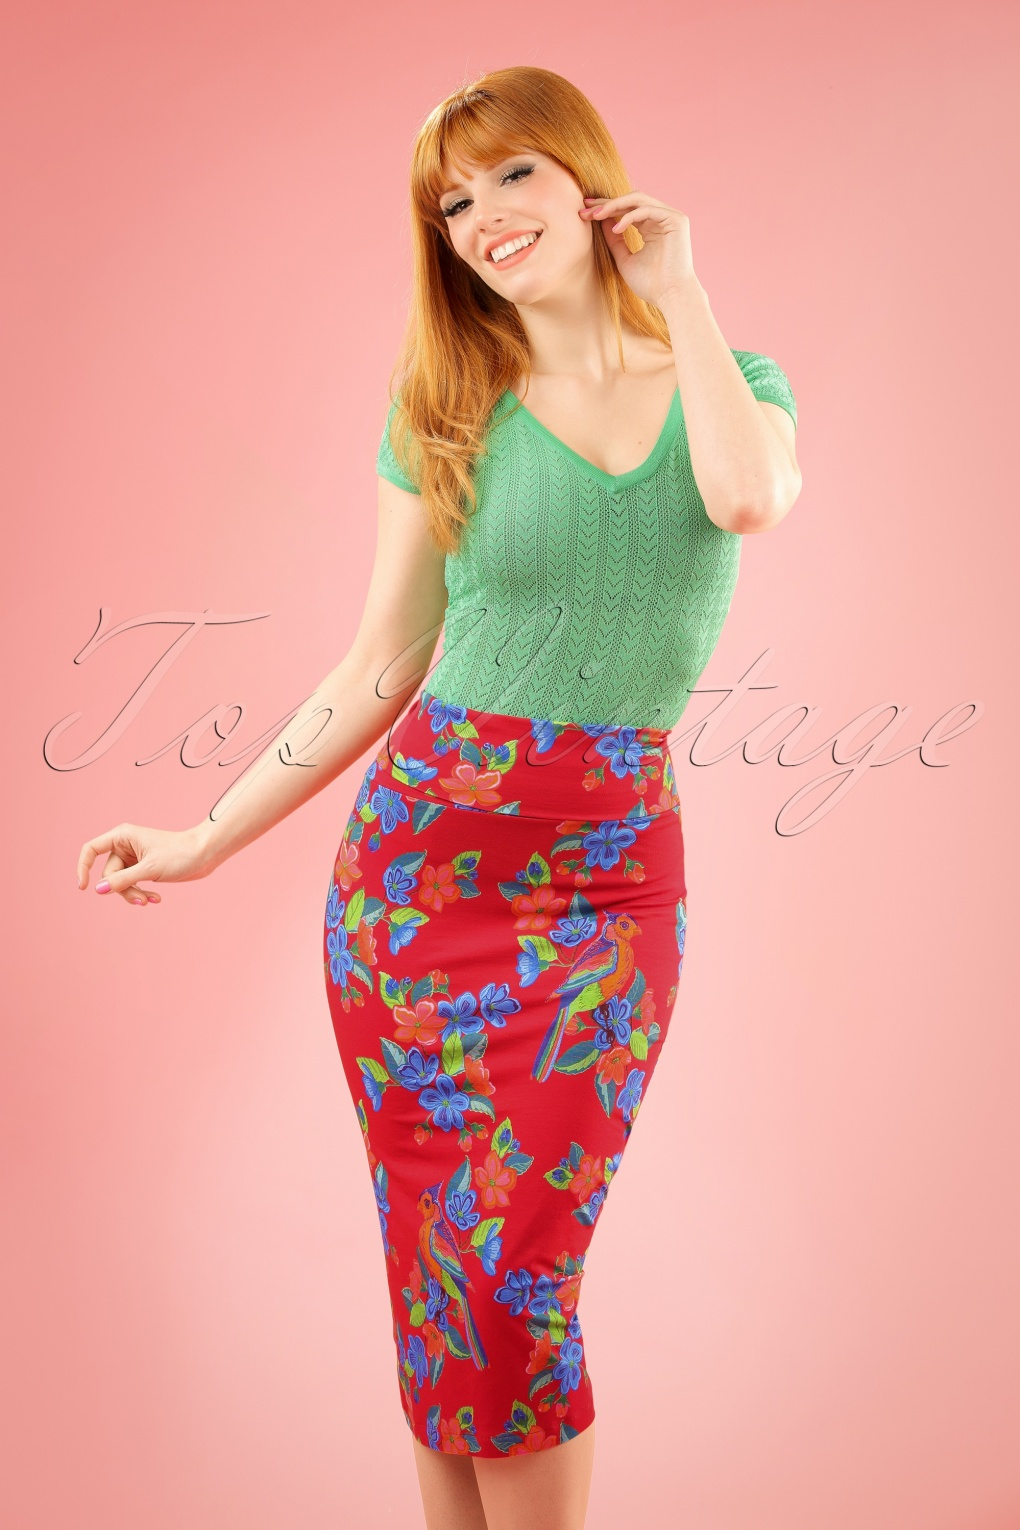 Retro Skirts: Vintage, Pencil, Circle, & Plus Sizes 60s Nice Geranium Parrot Skirt in Red £59.41 AT vintagedancer.com